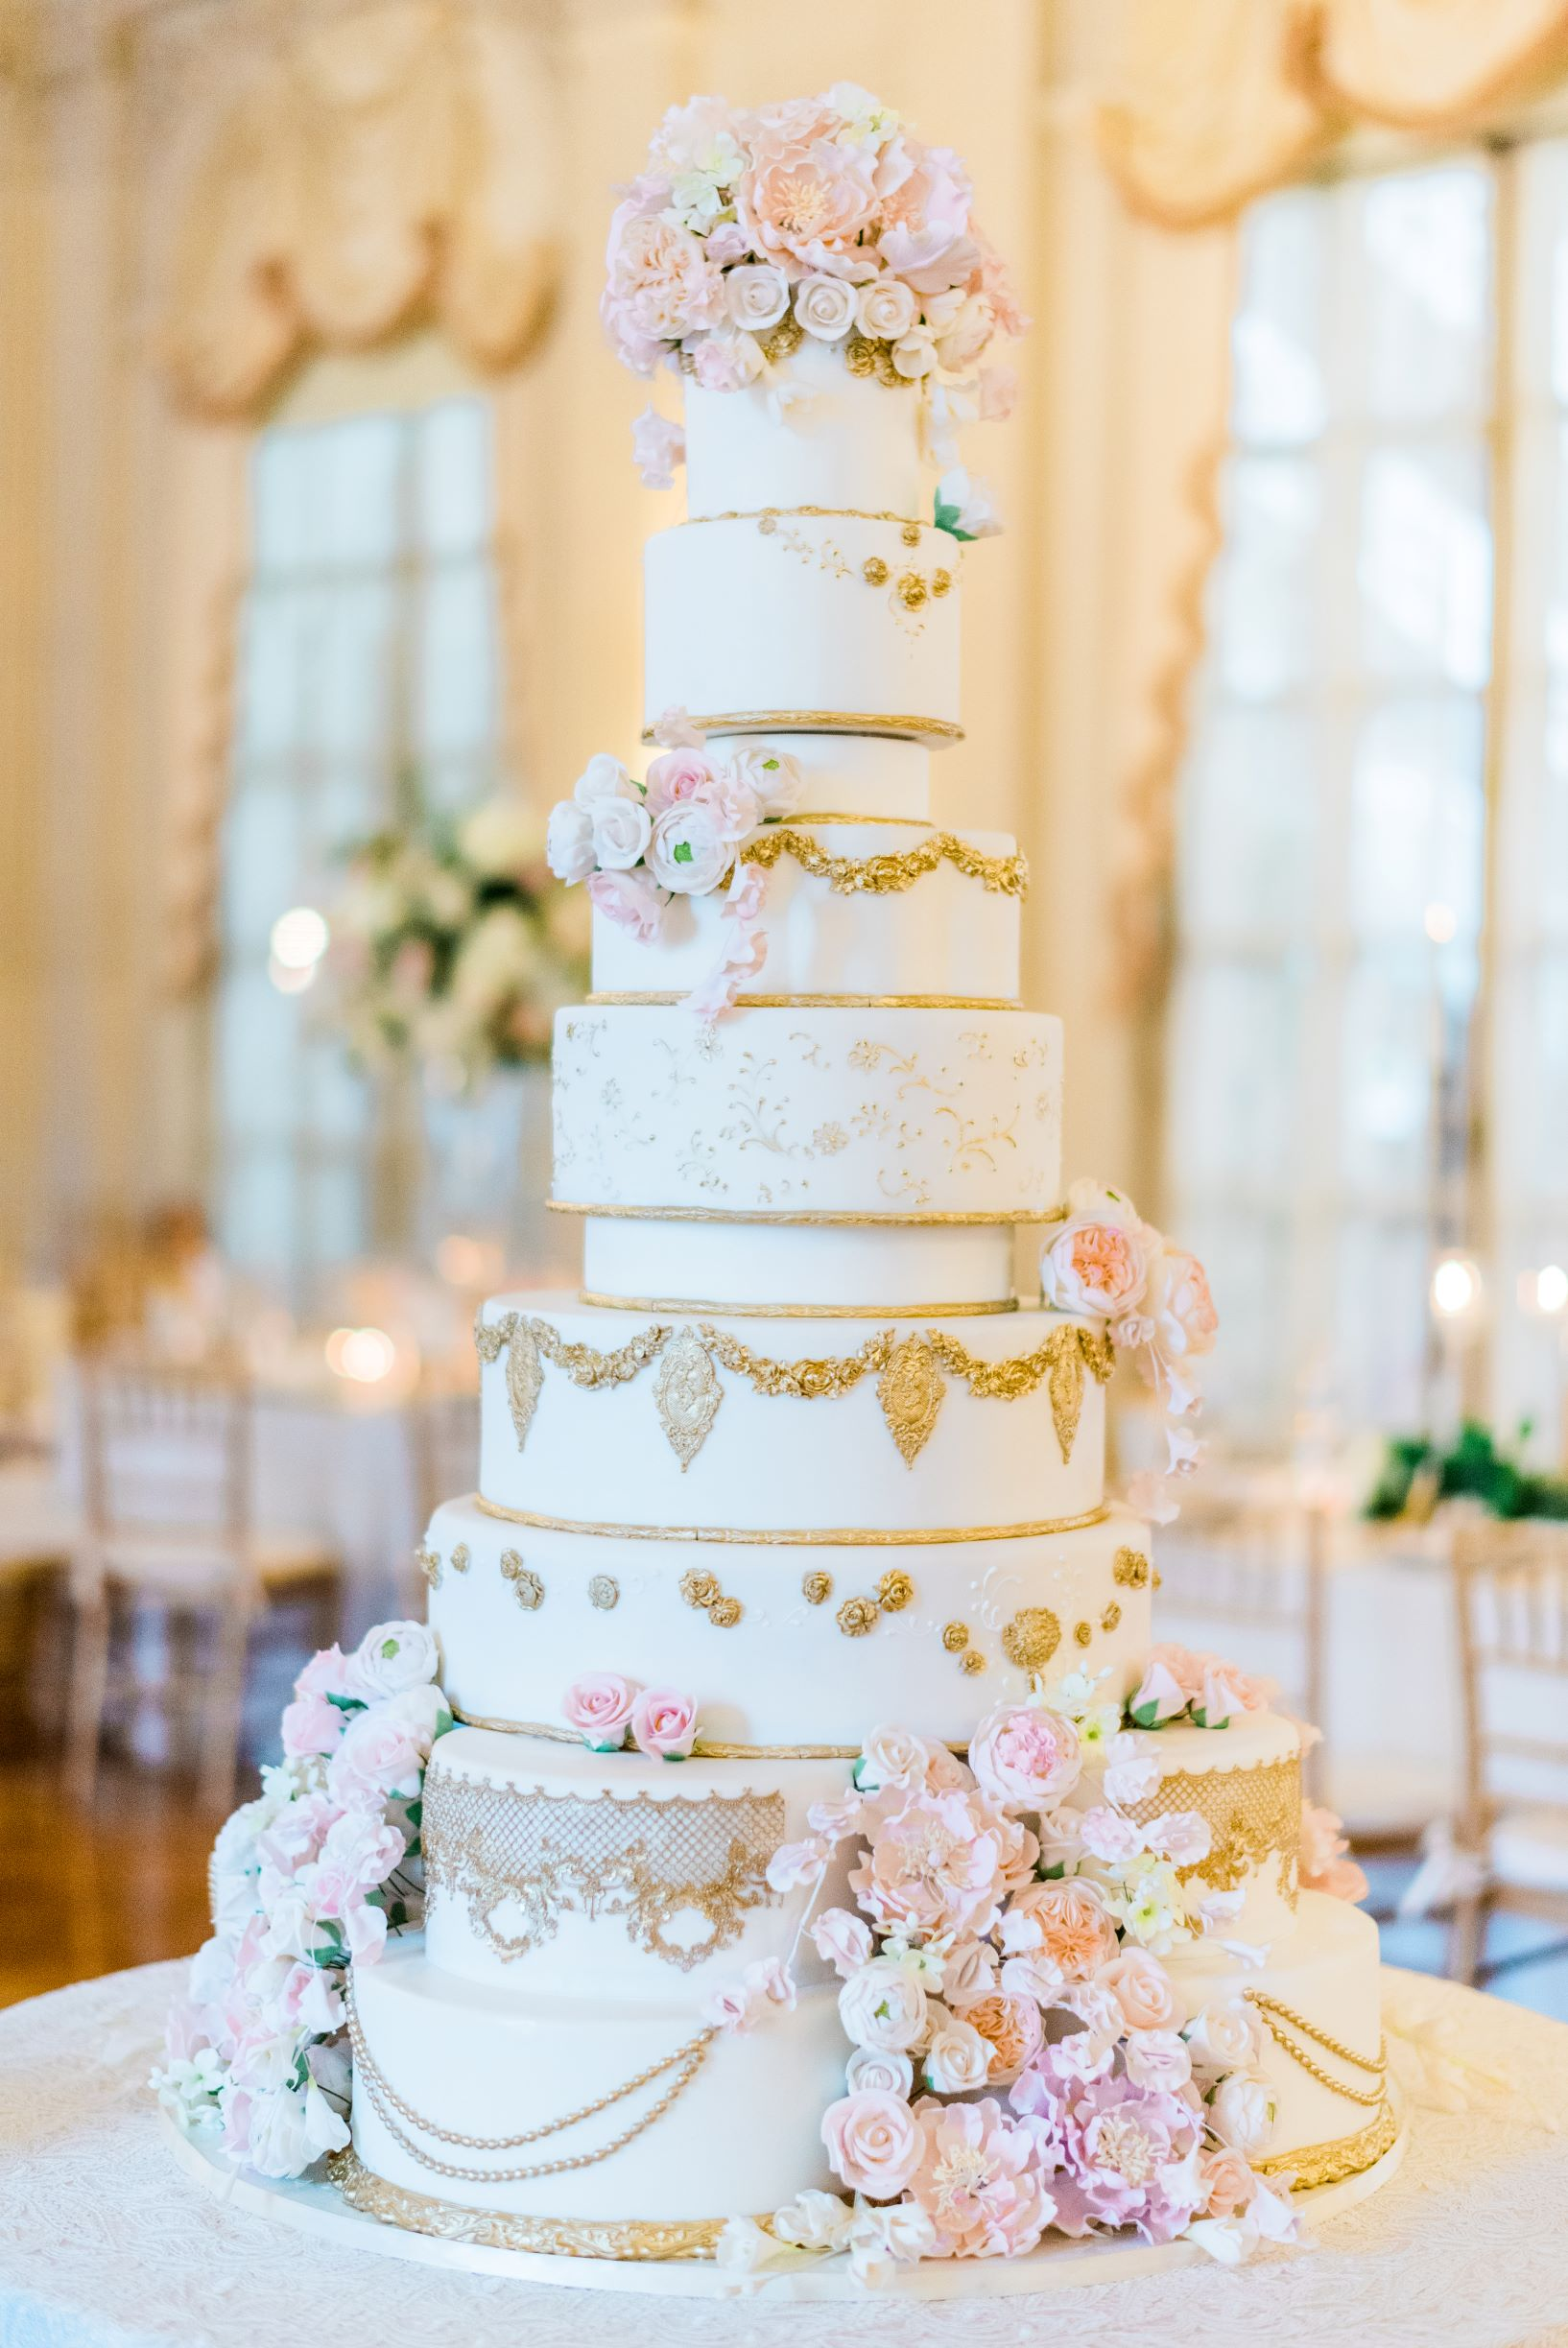 Rosecliff mansion luxury wedding cake